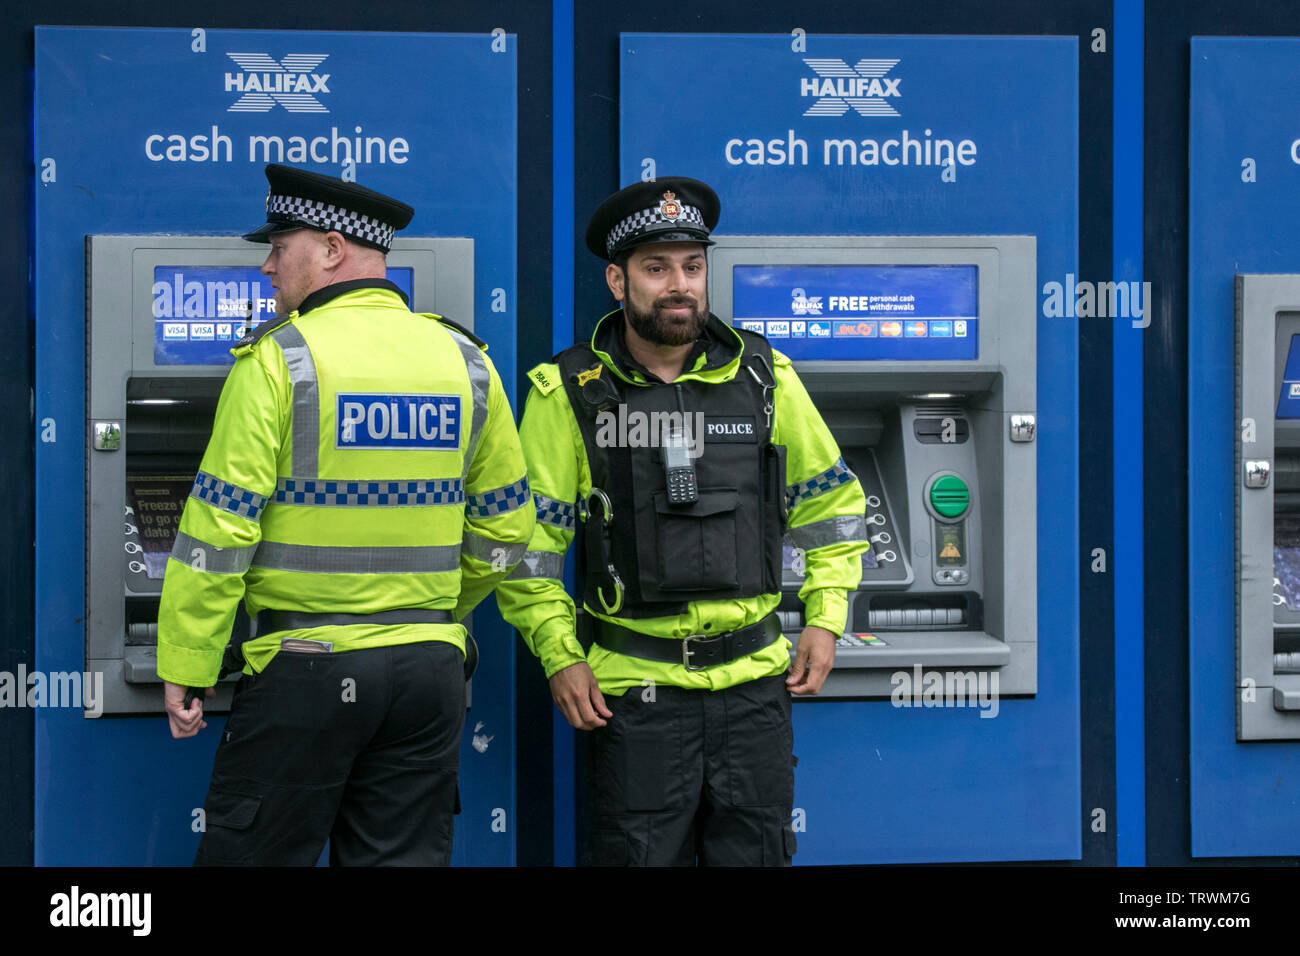 Two police officers at cash machine in Manchester city centre - Stock Image